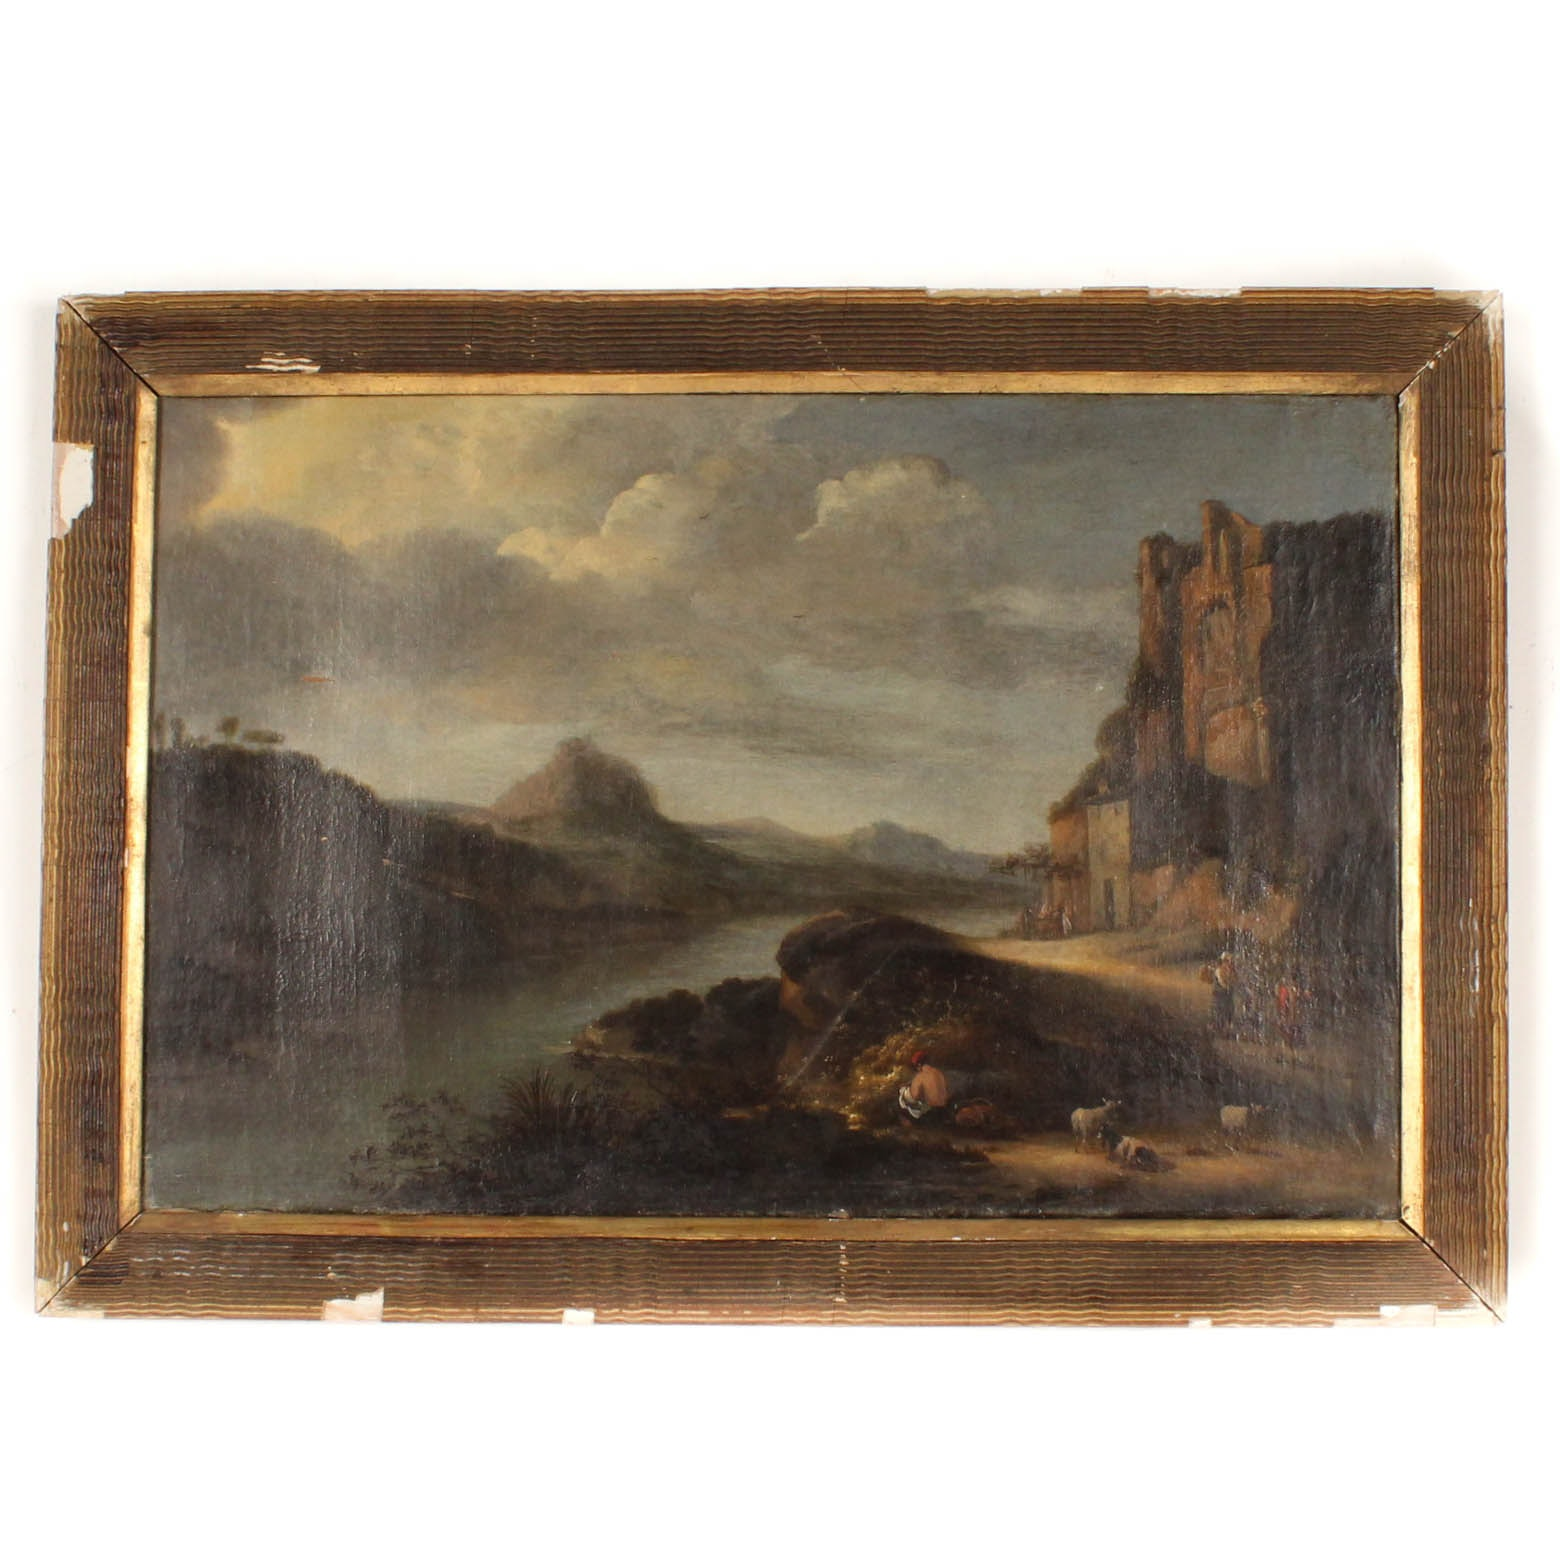 Antique Oil Painting of Landscape